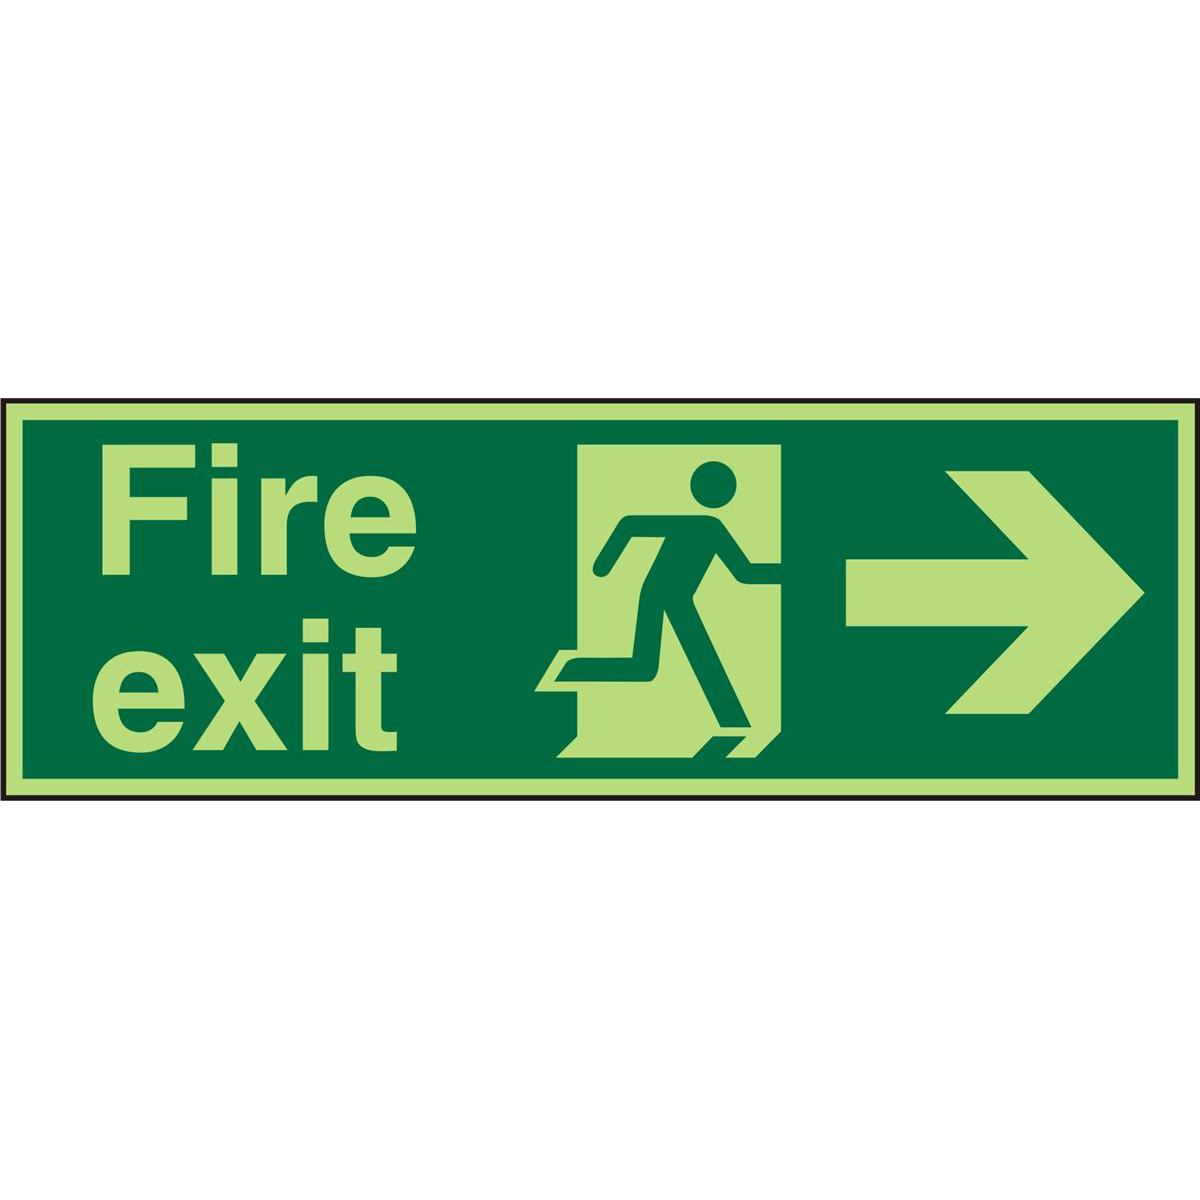 Photolum Sign 600x200 S/A FireExit Man Running&Arrow Right Ref PSP121SAV600x200 *Up to 10 Day Leadtime*